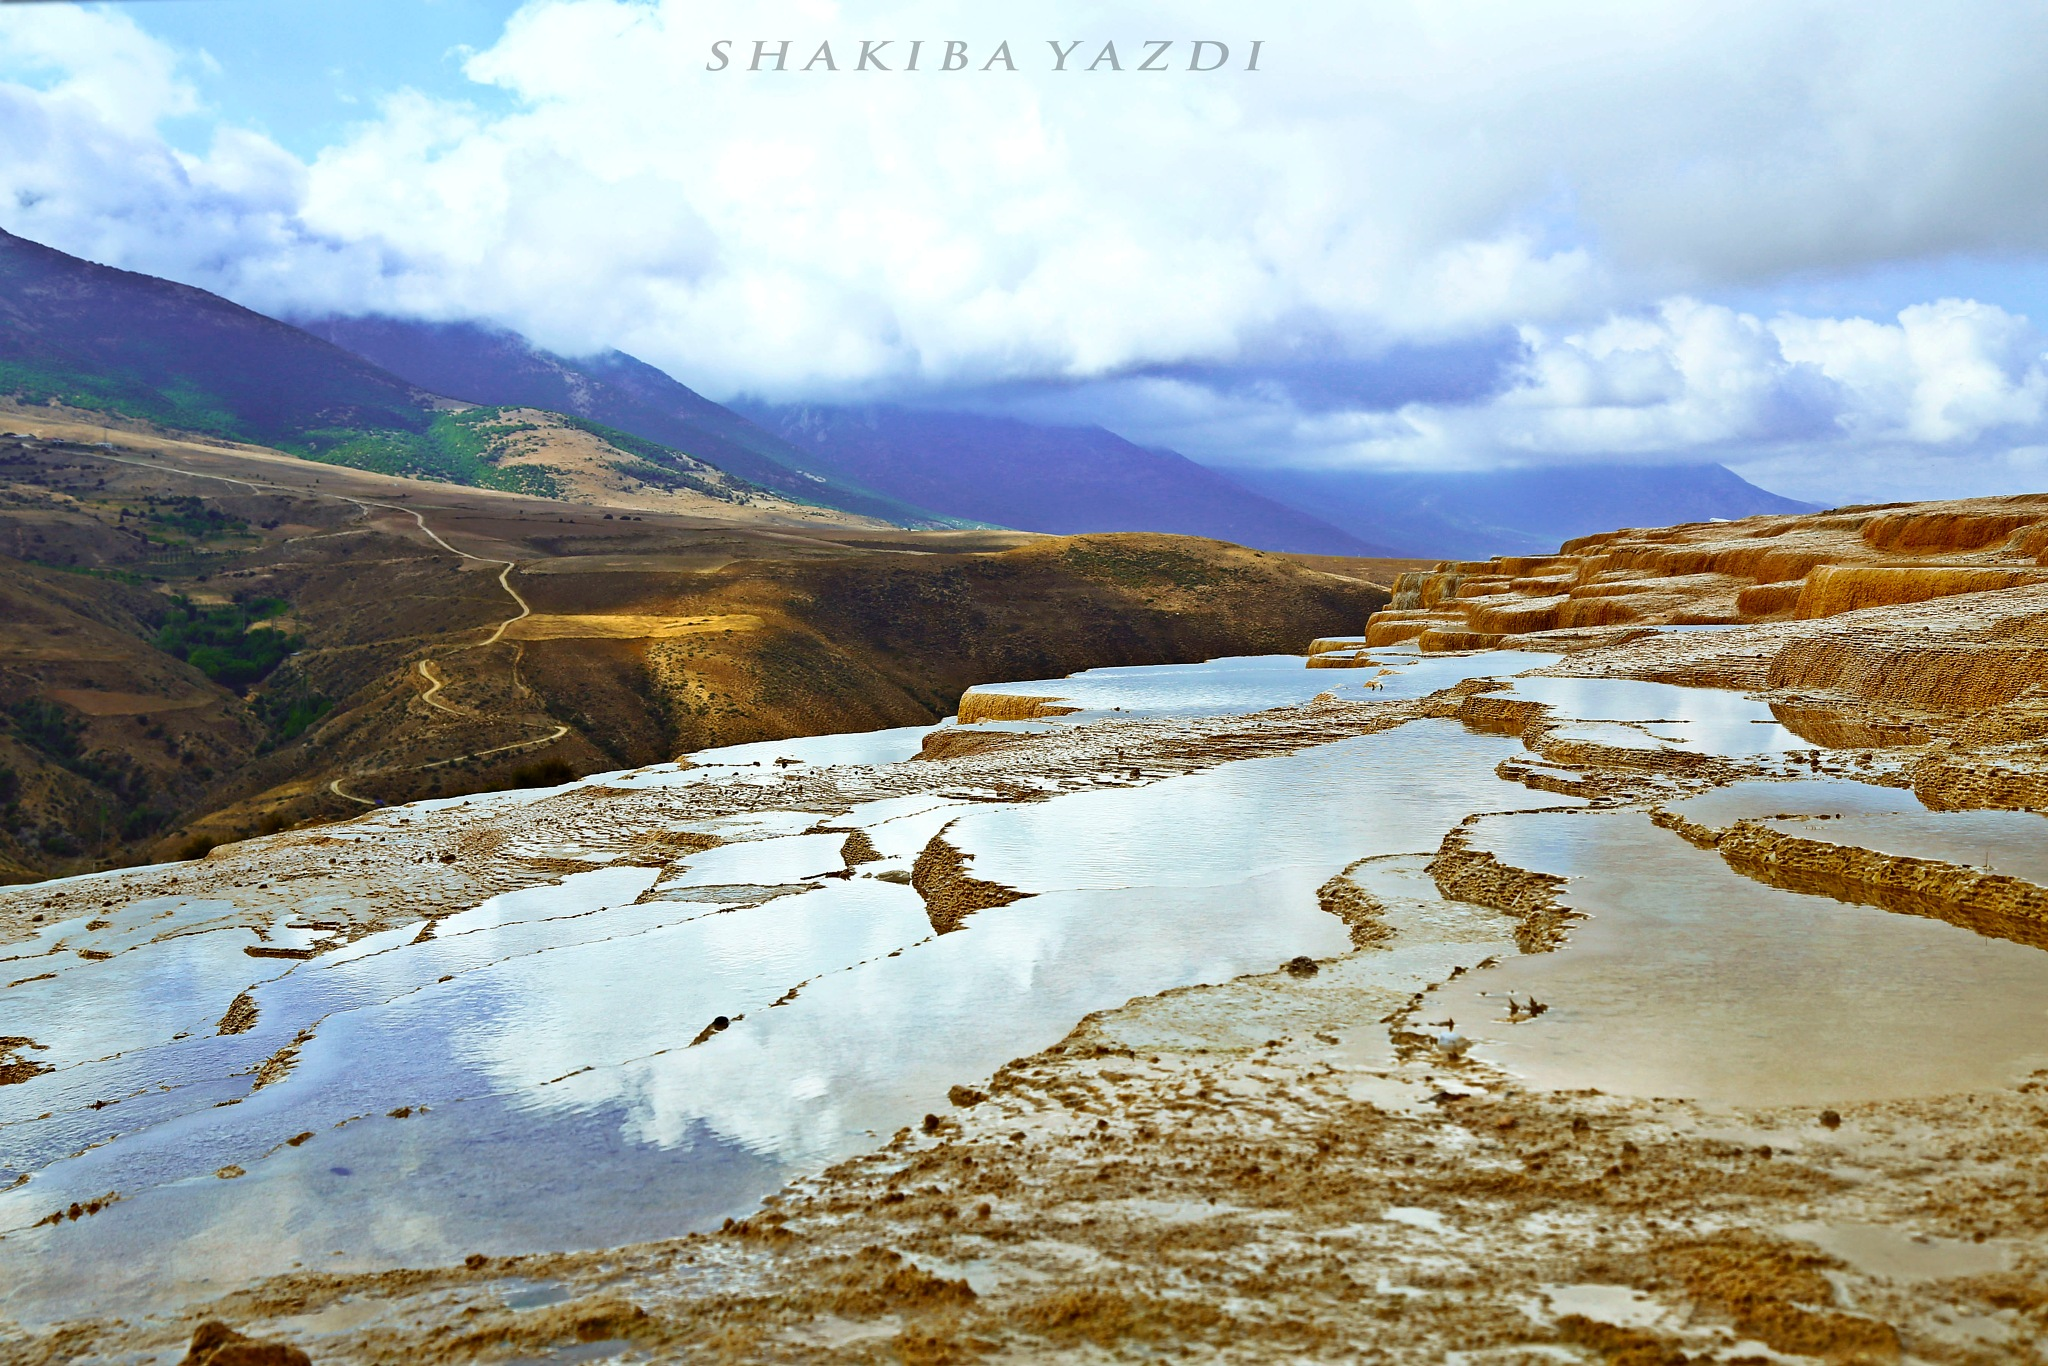 badab sort by Shakiba Yazdi